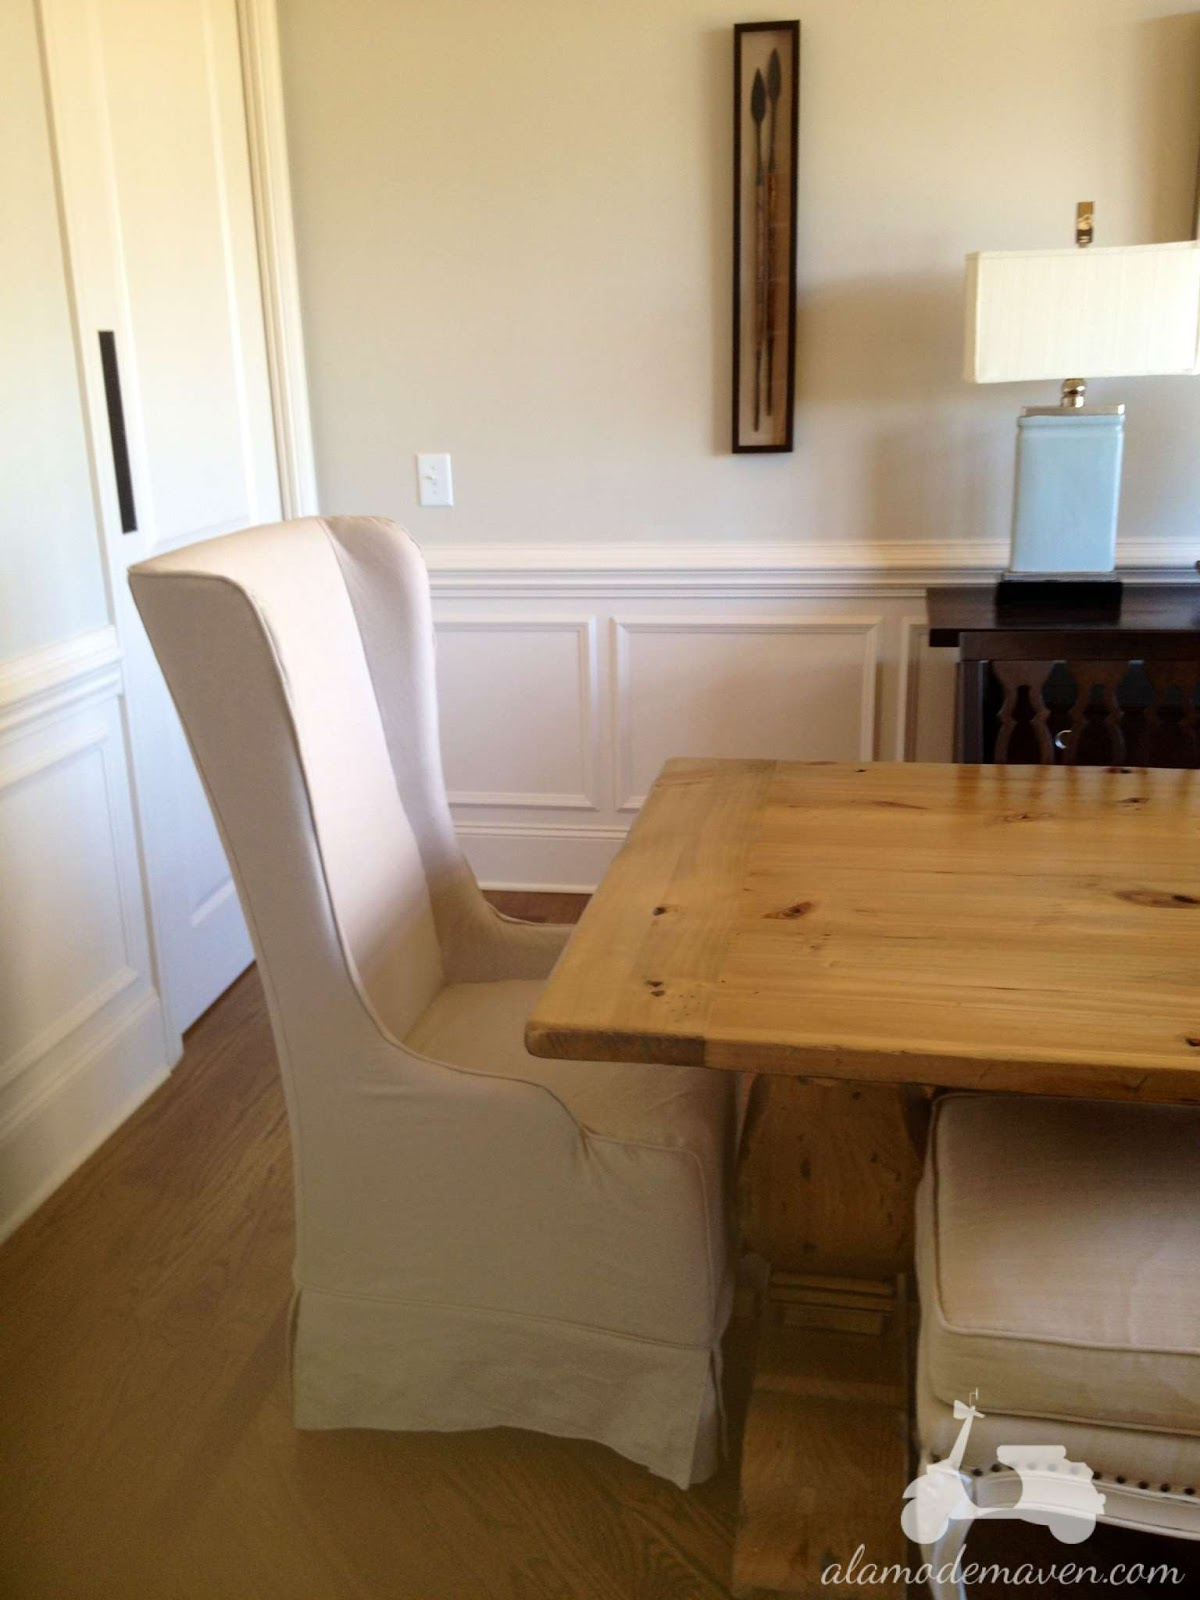 loose fit slipcovers for chairs stool chair ebay 1000+ images about ii. upholstry -28. fitted slip covers on pinterest | slipcovers, loveseats ...